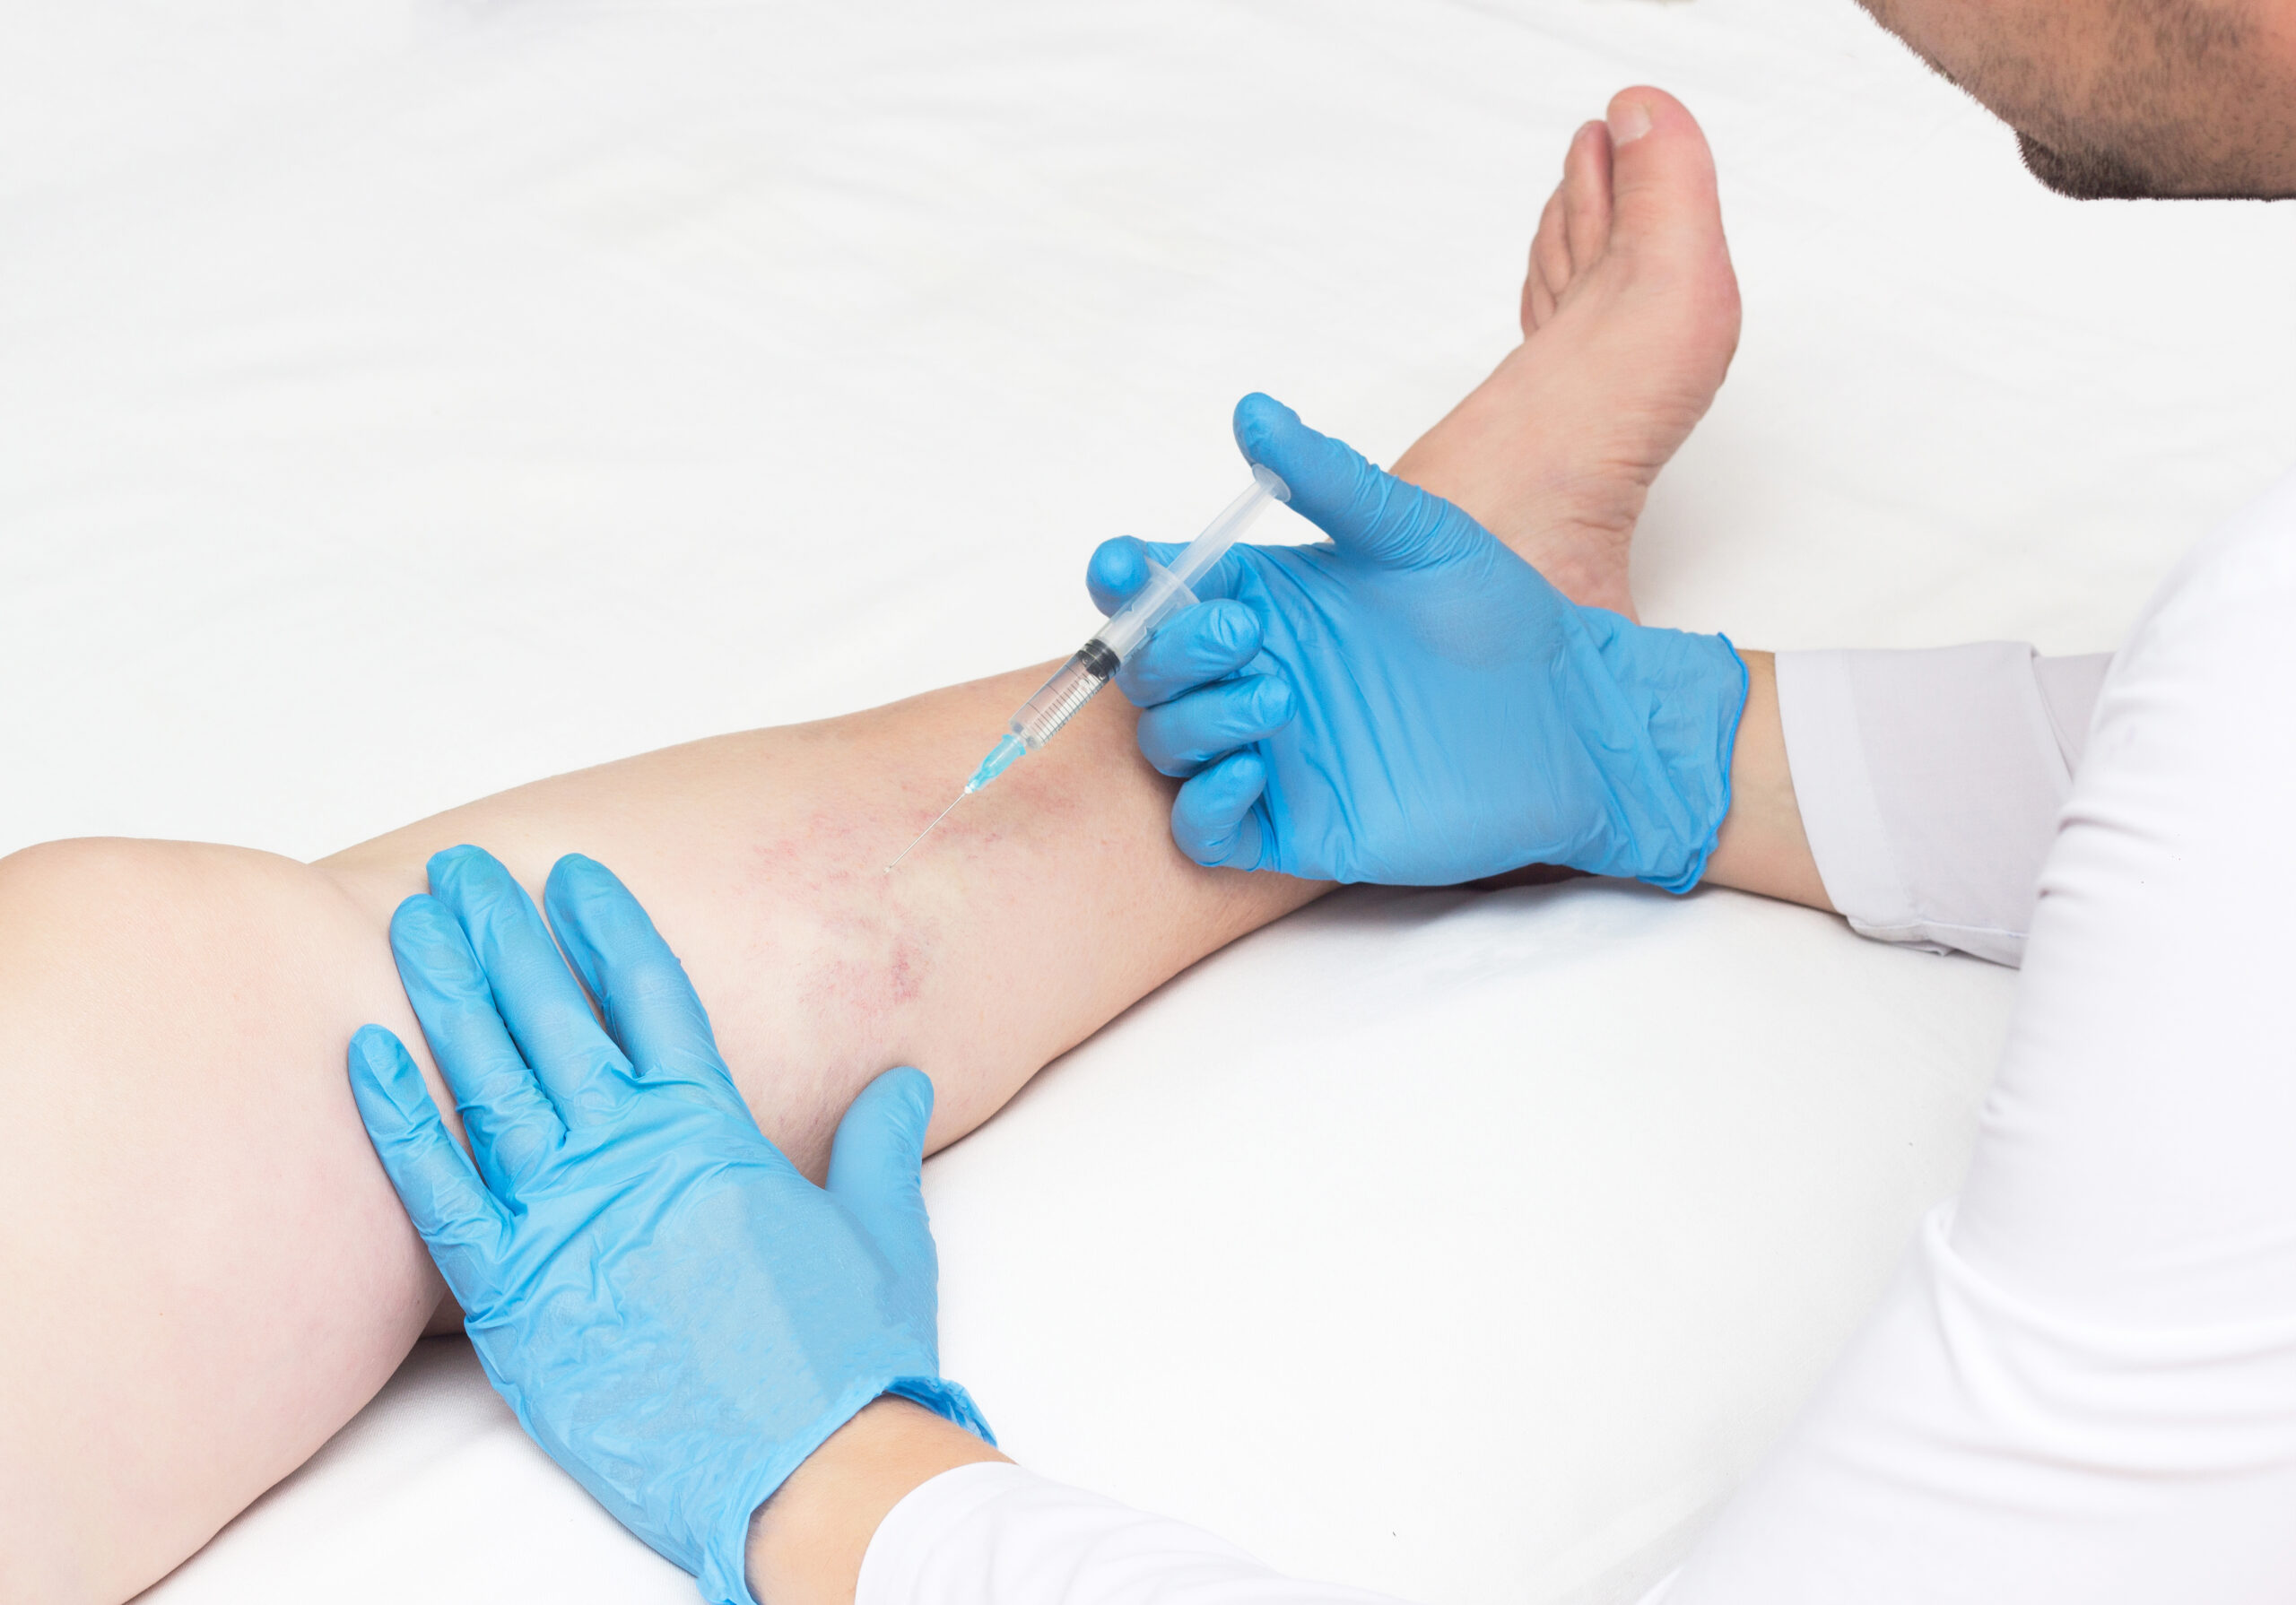 For too long, you have let spider and varicose veins dictate how you live your life - from the clothes you wear to the places you go. You are sick of the unsightly spider veins and varicose veins on your legs and have been looking for the best vein treatment center for you. The internet is full of vein treatment centers claiming to be the best; but how do you choose? What are the things to look for when picking a vein treatment center that is best suited for you? Keep reading to find the five things that the best vein treatment centers have!